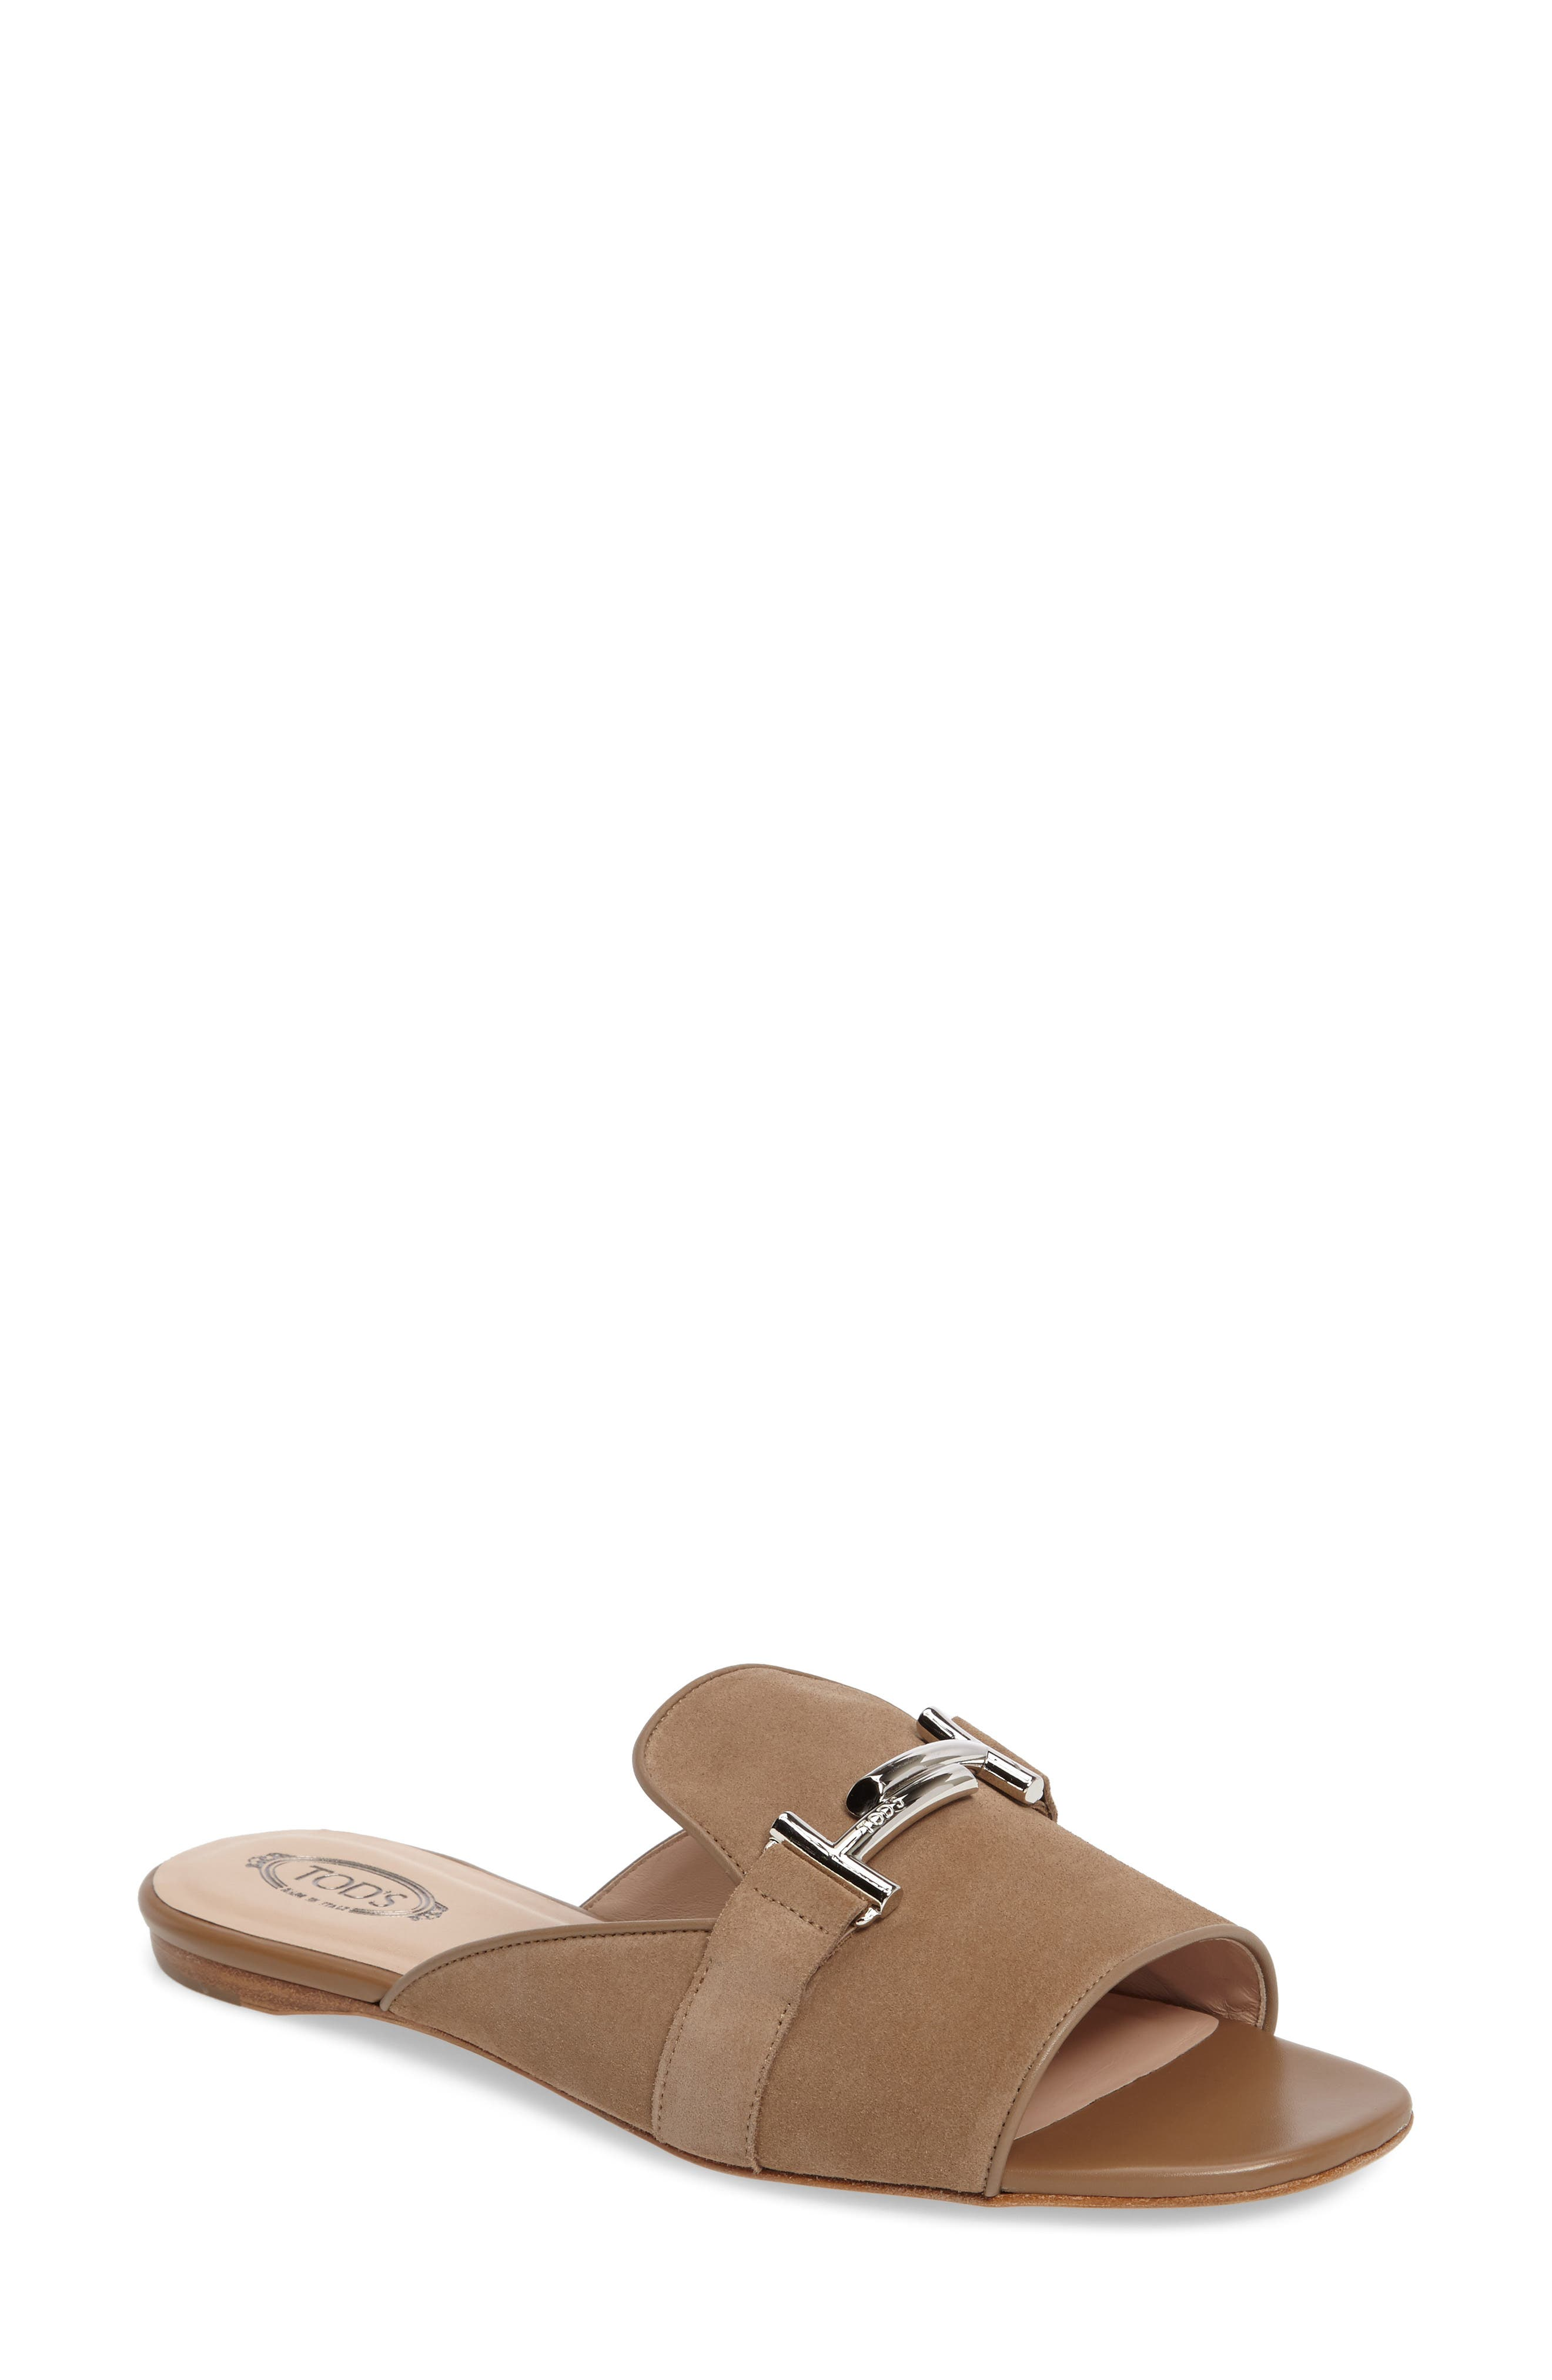 Alternate Image 1 Selected - Tod's Double T Open Toe Loafer Mule (Women)